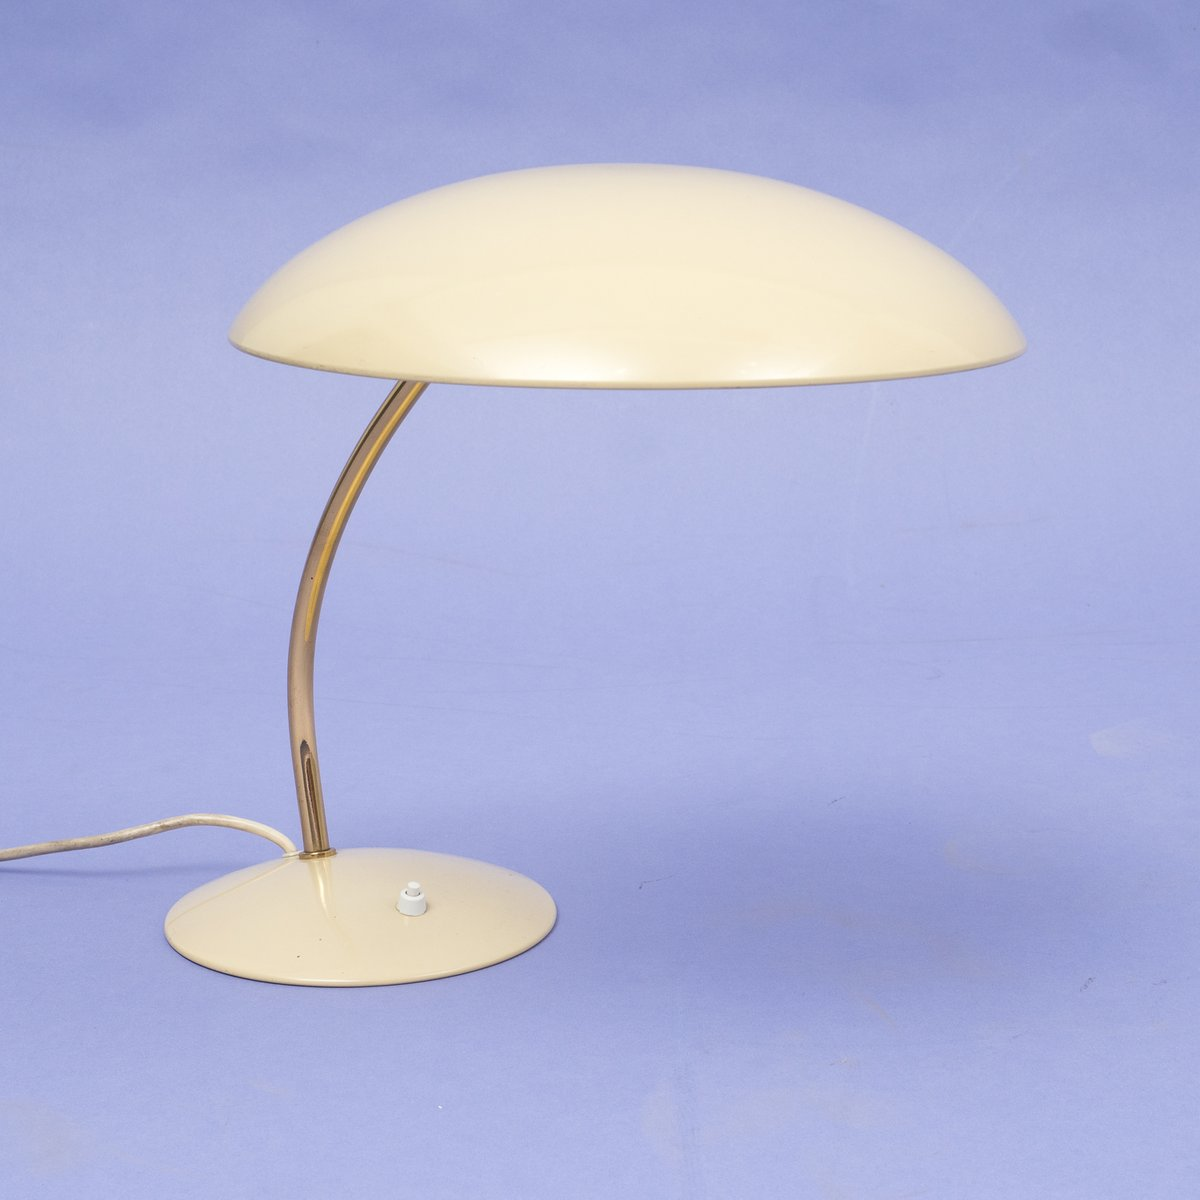 Vintage Model 6782 Table Lamp By Christian Dell For Kaiser